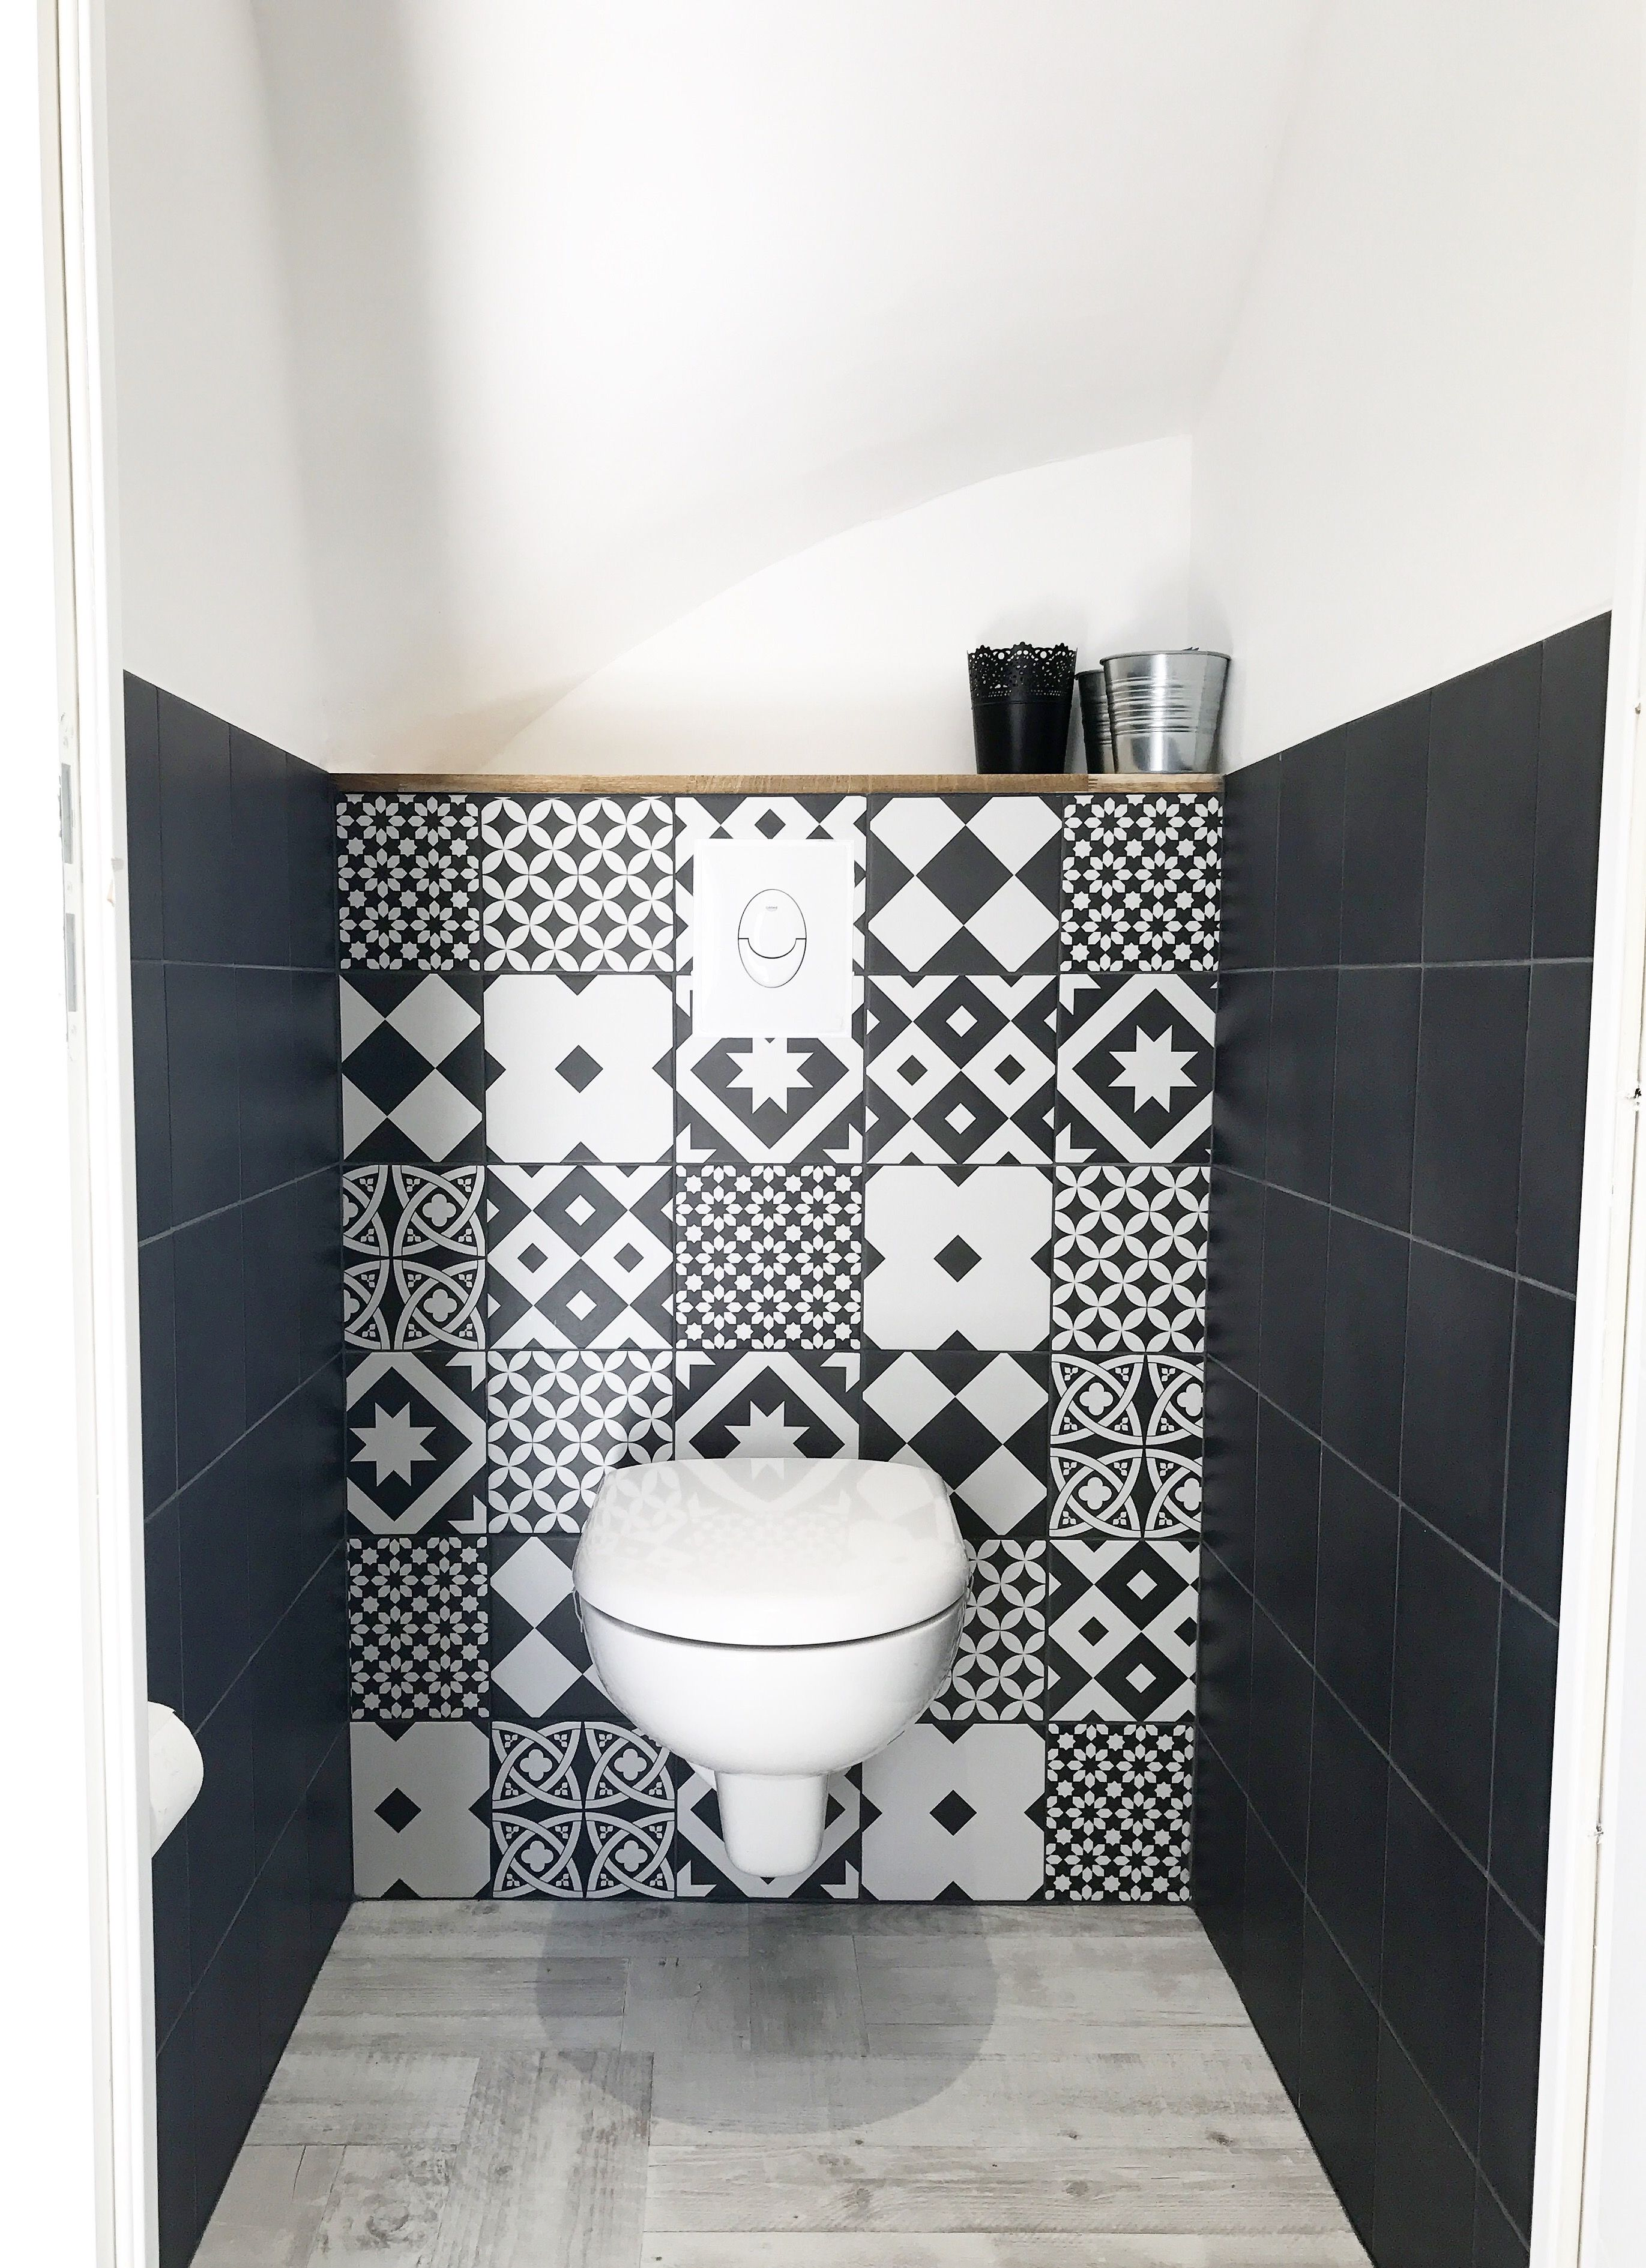 Wc Faiences Carreaux De Ciment Et Carreaux Noirs Leroy Merlin Wc Faiences Carreaux De Ciment De Idee Deco Toilettes Decoration Toilettes Deco Toilettes